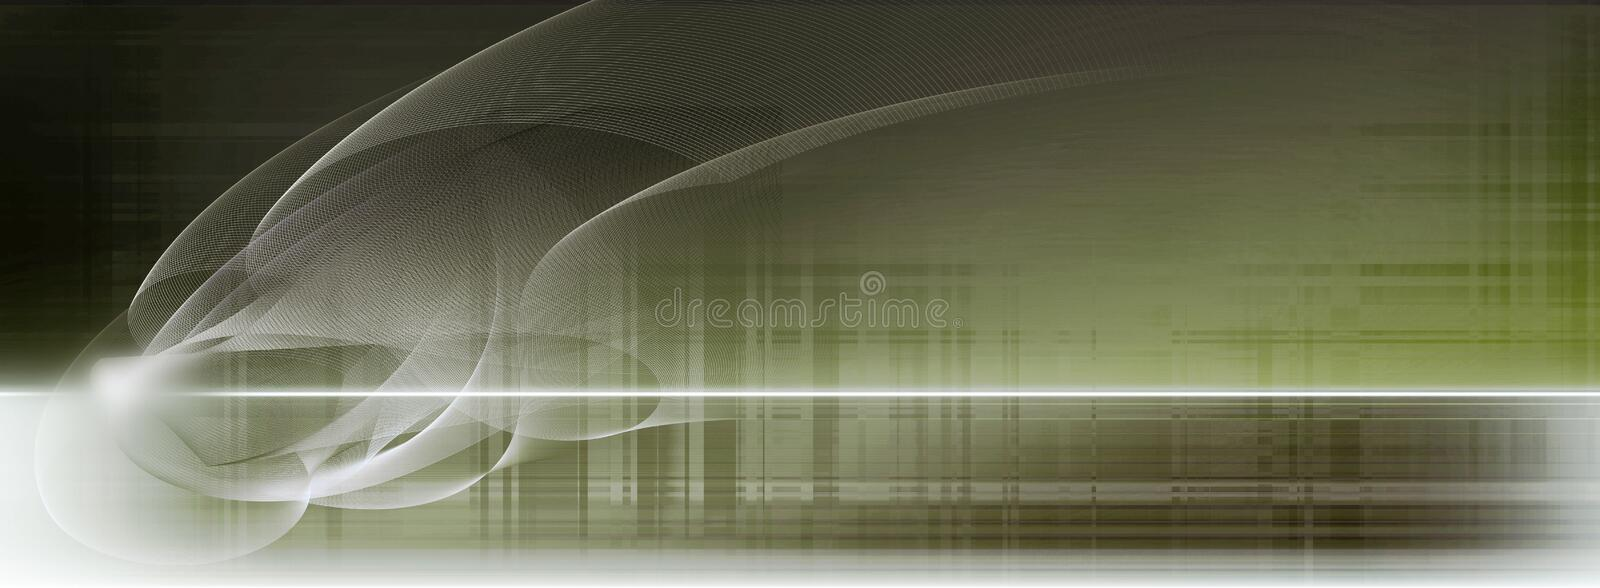 Light blue and white motion lines on blurred sepia background royalty free illustration